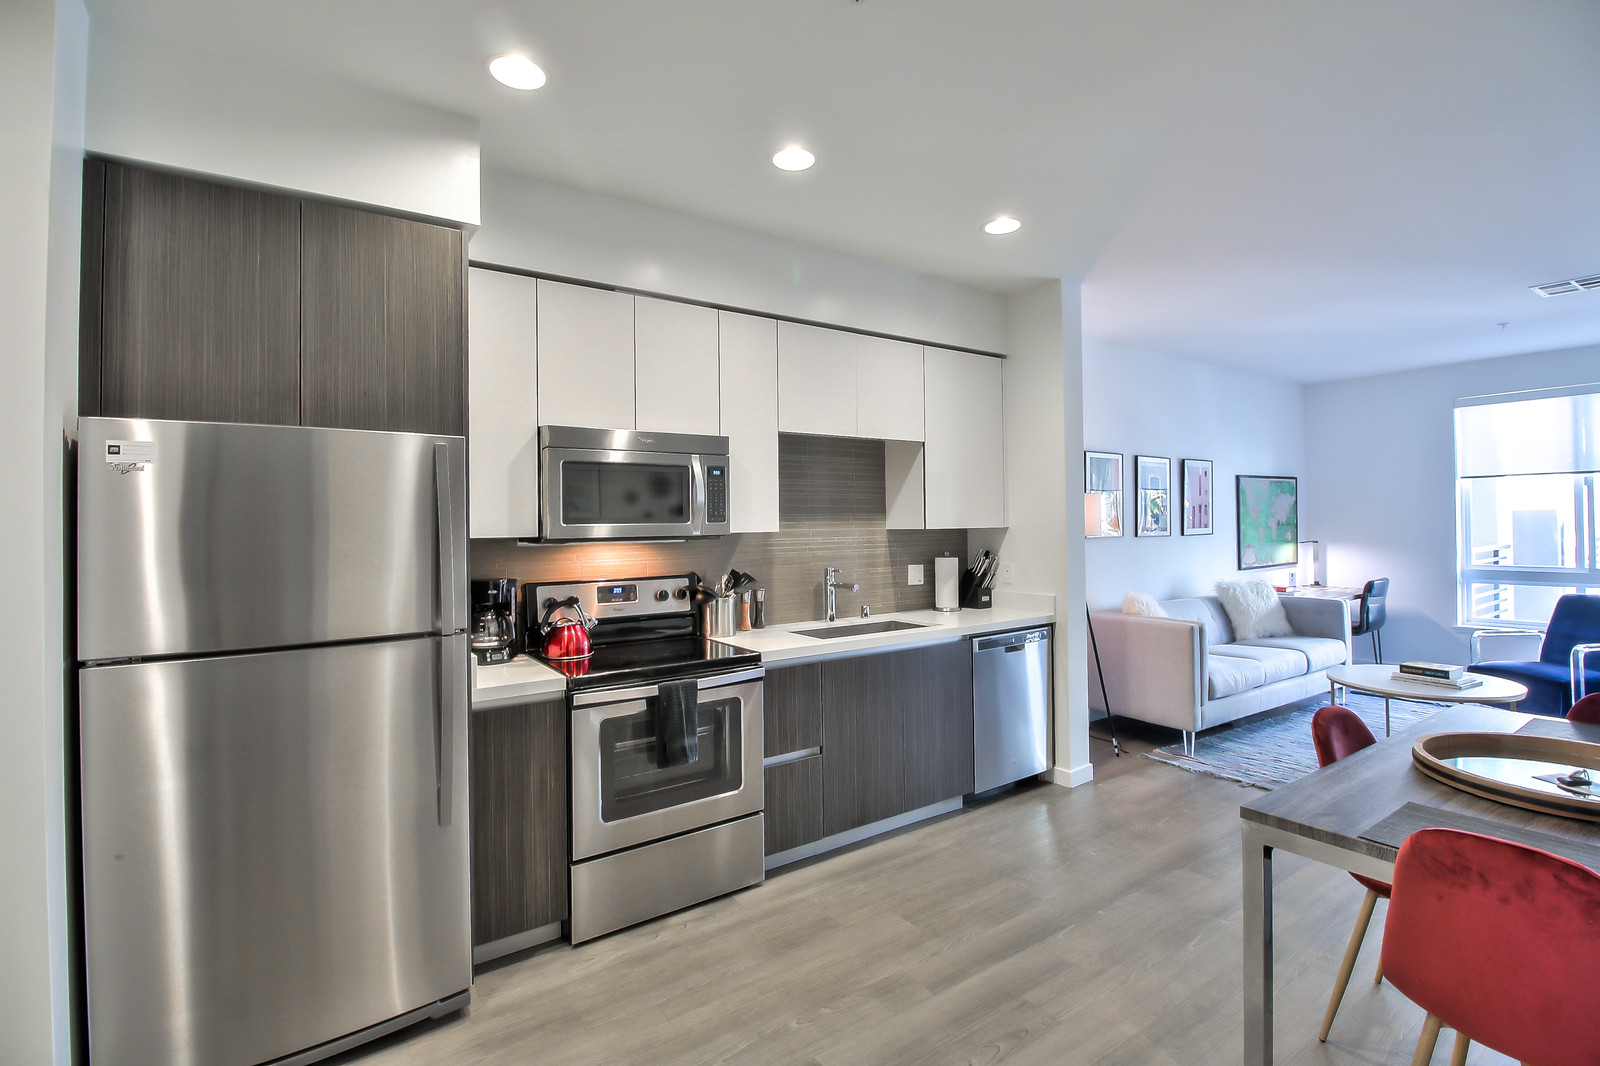 Kitchen at Aire Serviced Apartments